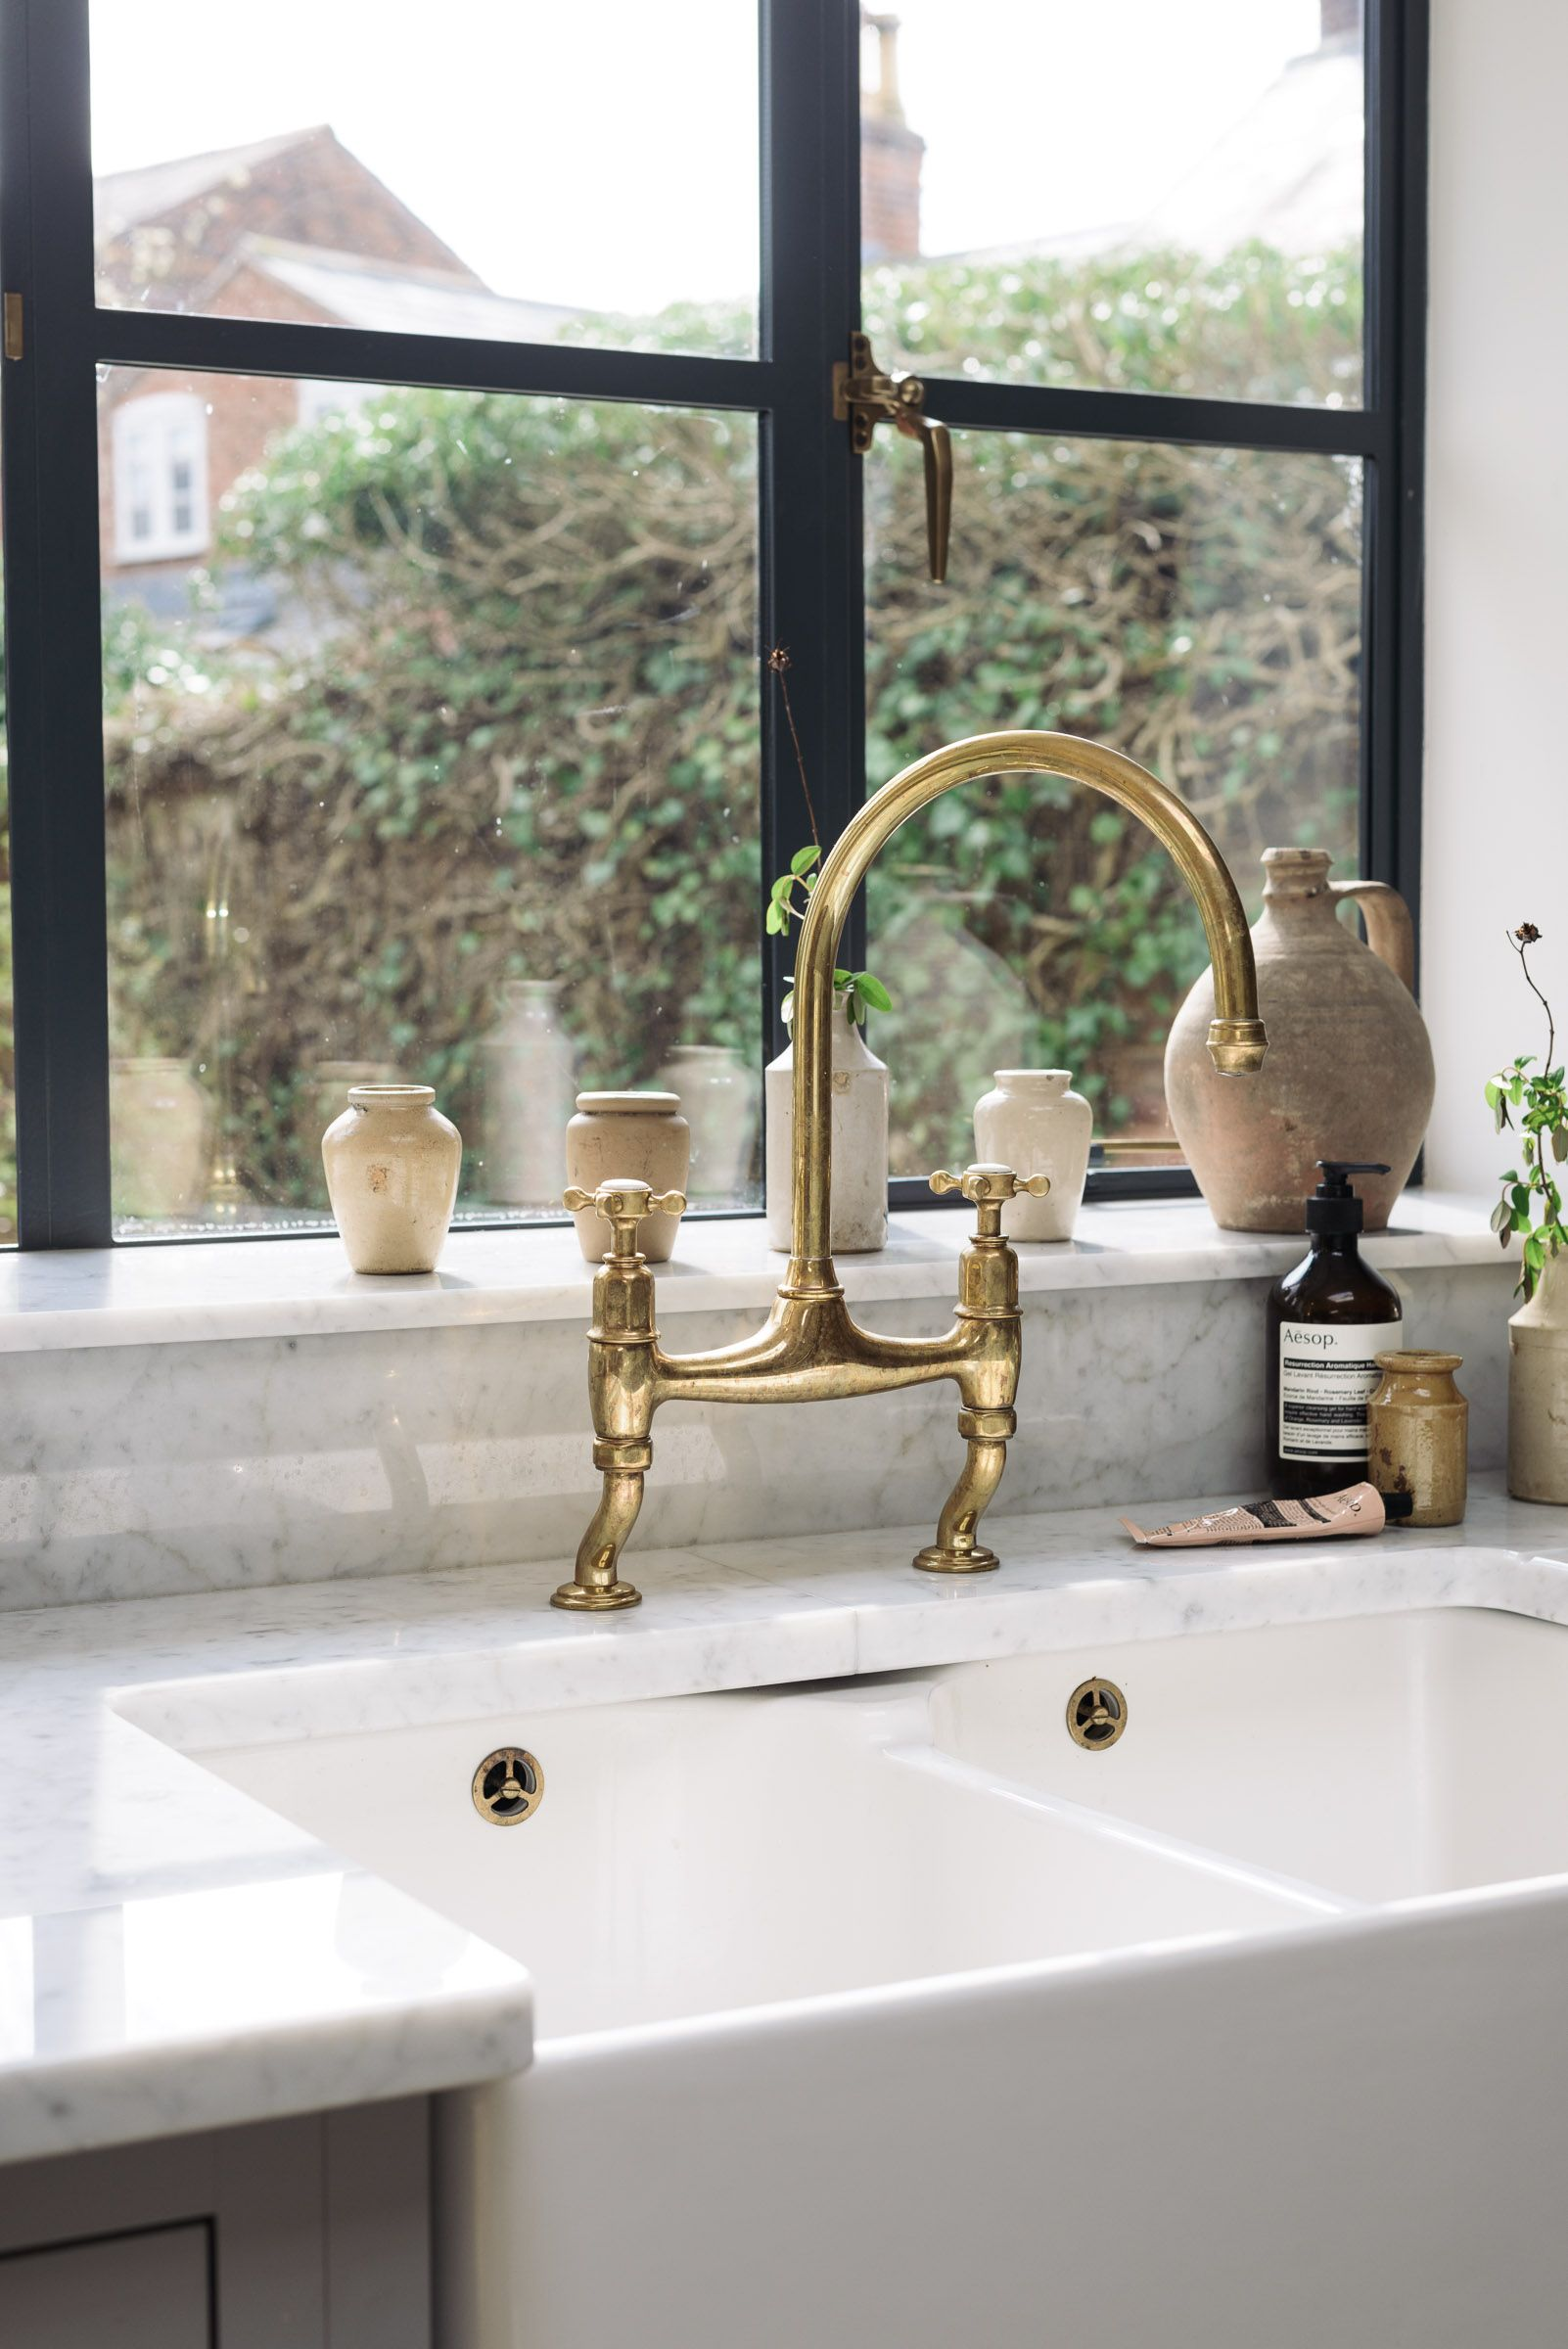 kohler of f inspirational single control aged faucet sink brass coralais k cp kitchen